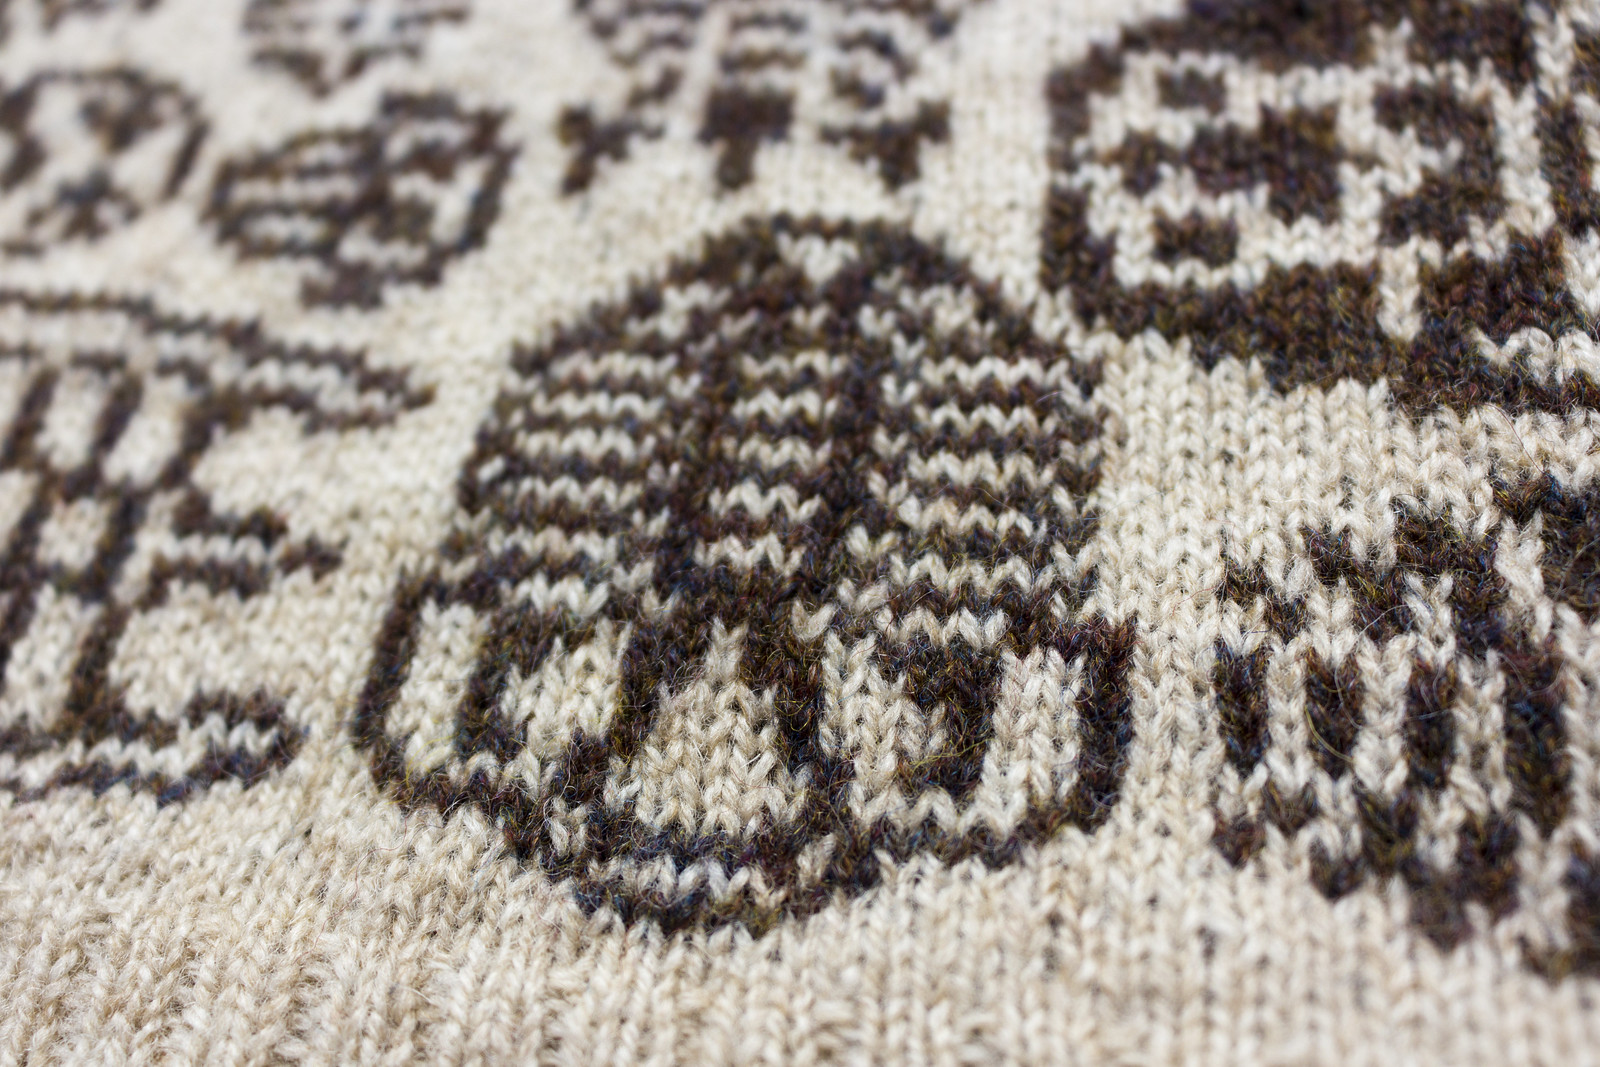 close up knitted trilobite motif